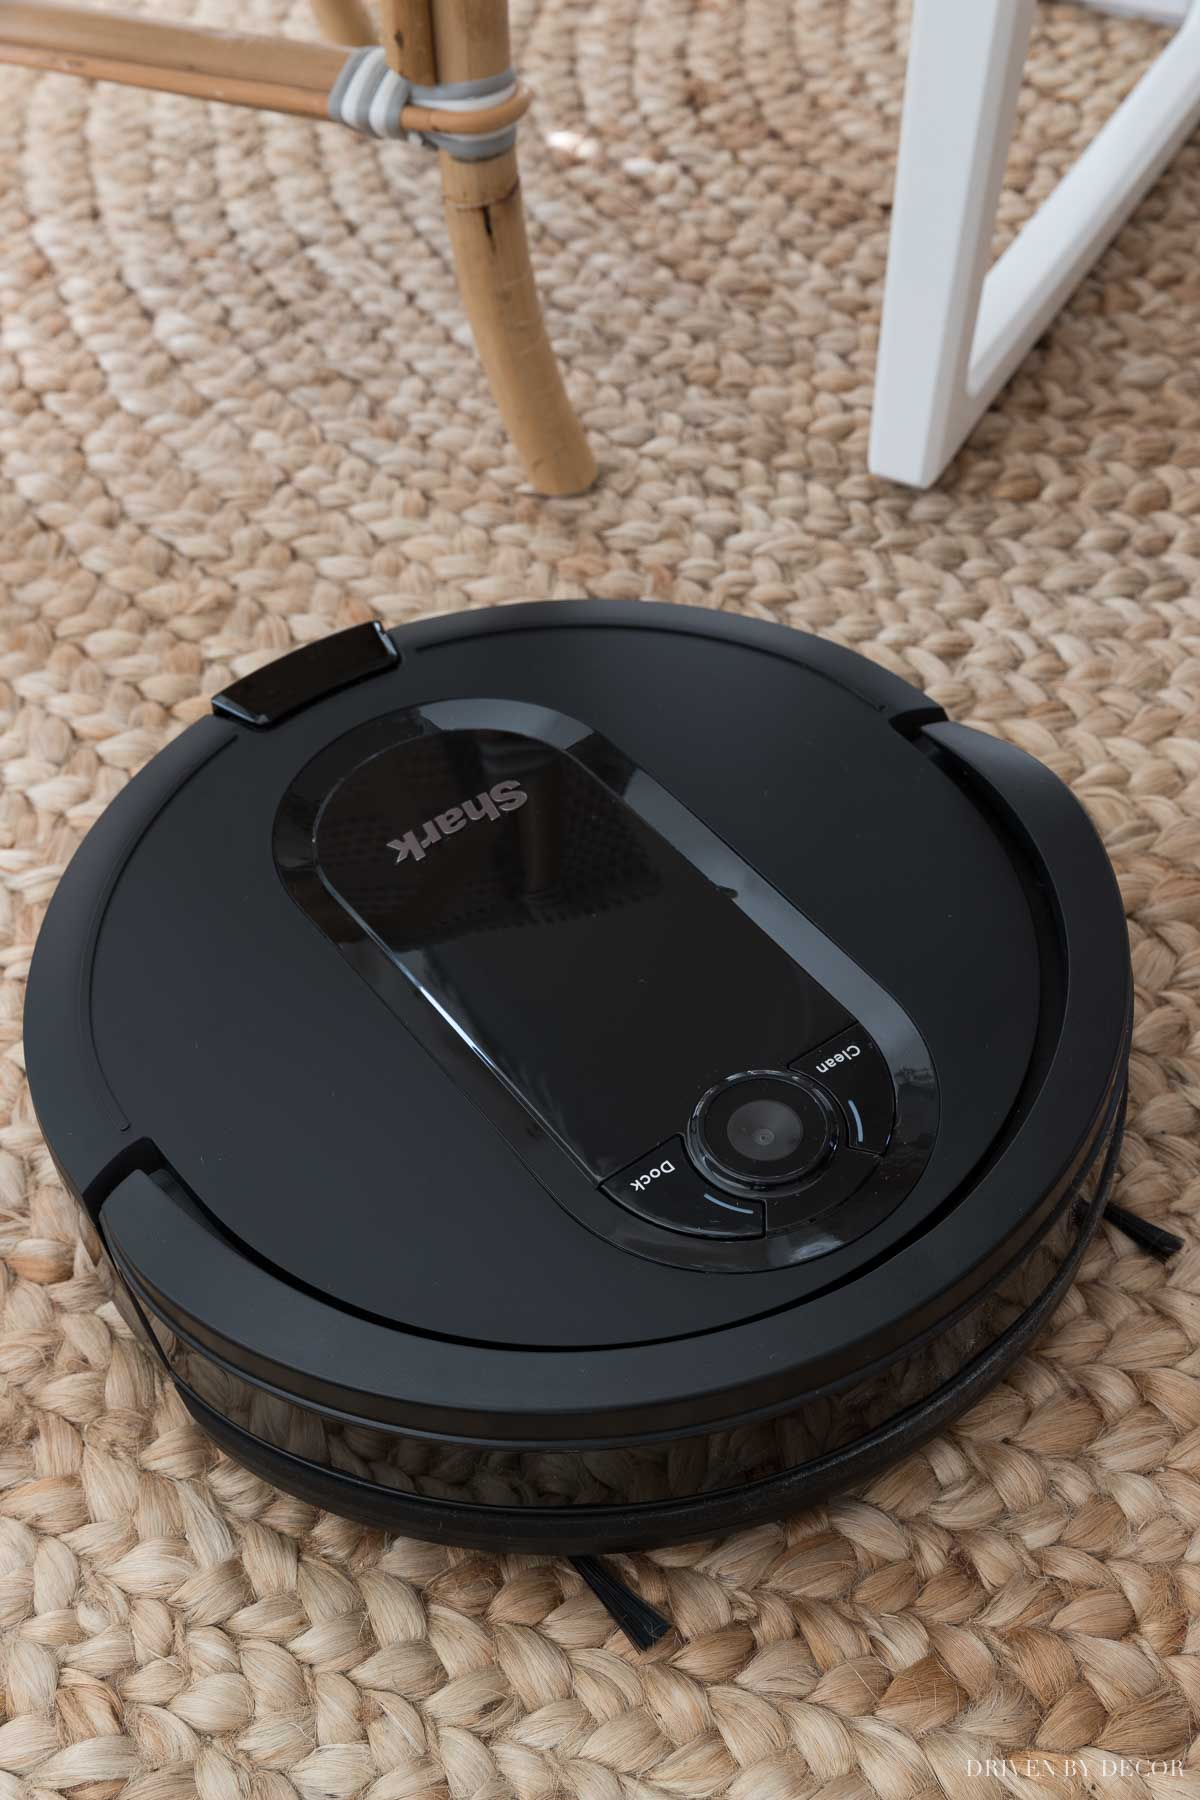 This robot vacuum is a favorite for keeping our house clean between deep cleanings! Definitely a favorite Amazon gadget!